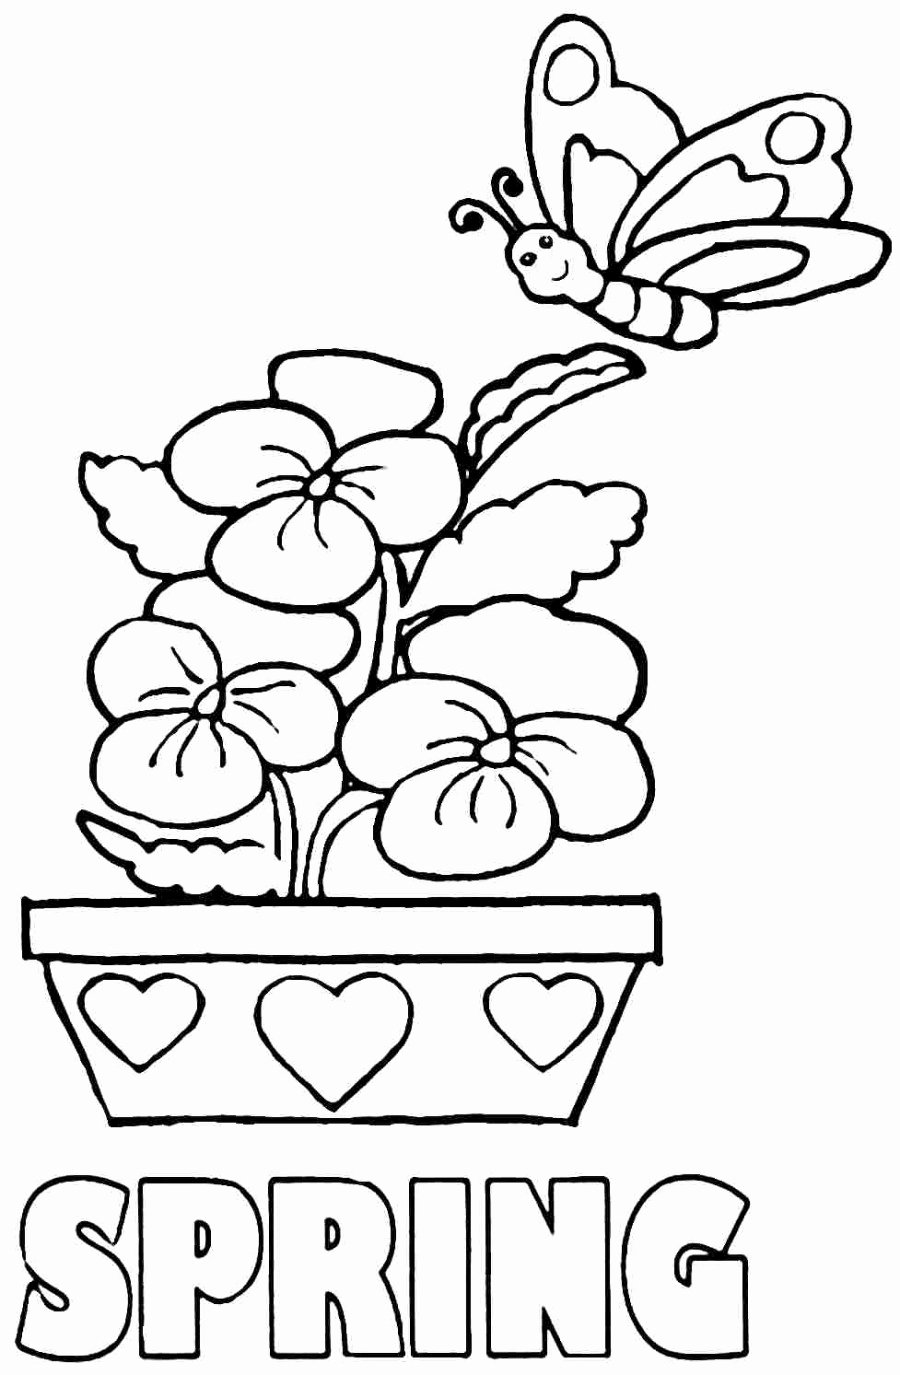 Printable Spring Worksheets for Preschoolers Free Fabulous Spring Coloring Sheets for toddlers Picture